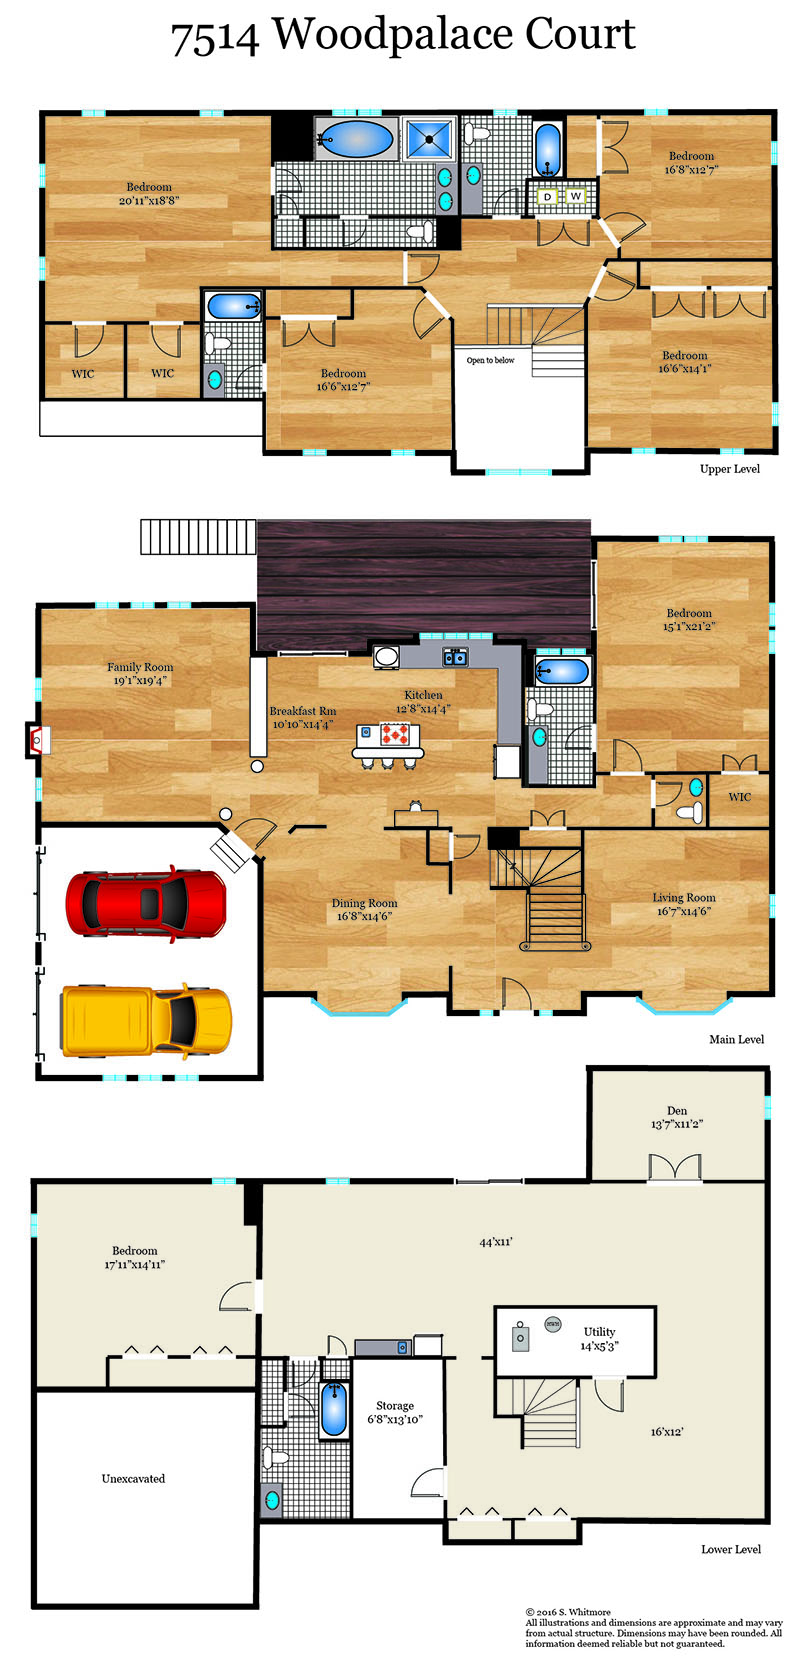 259_floorplan_level-web Woodpalace Annandale Real Estate Listings - Best of Northern Virginia